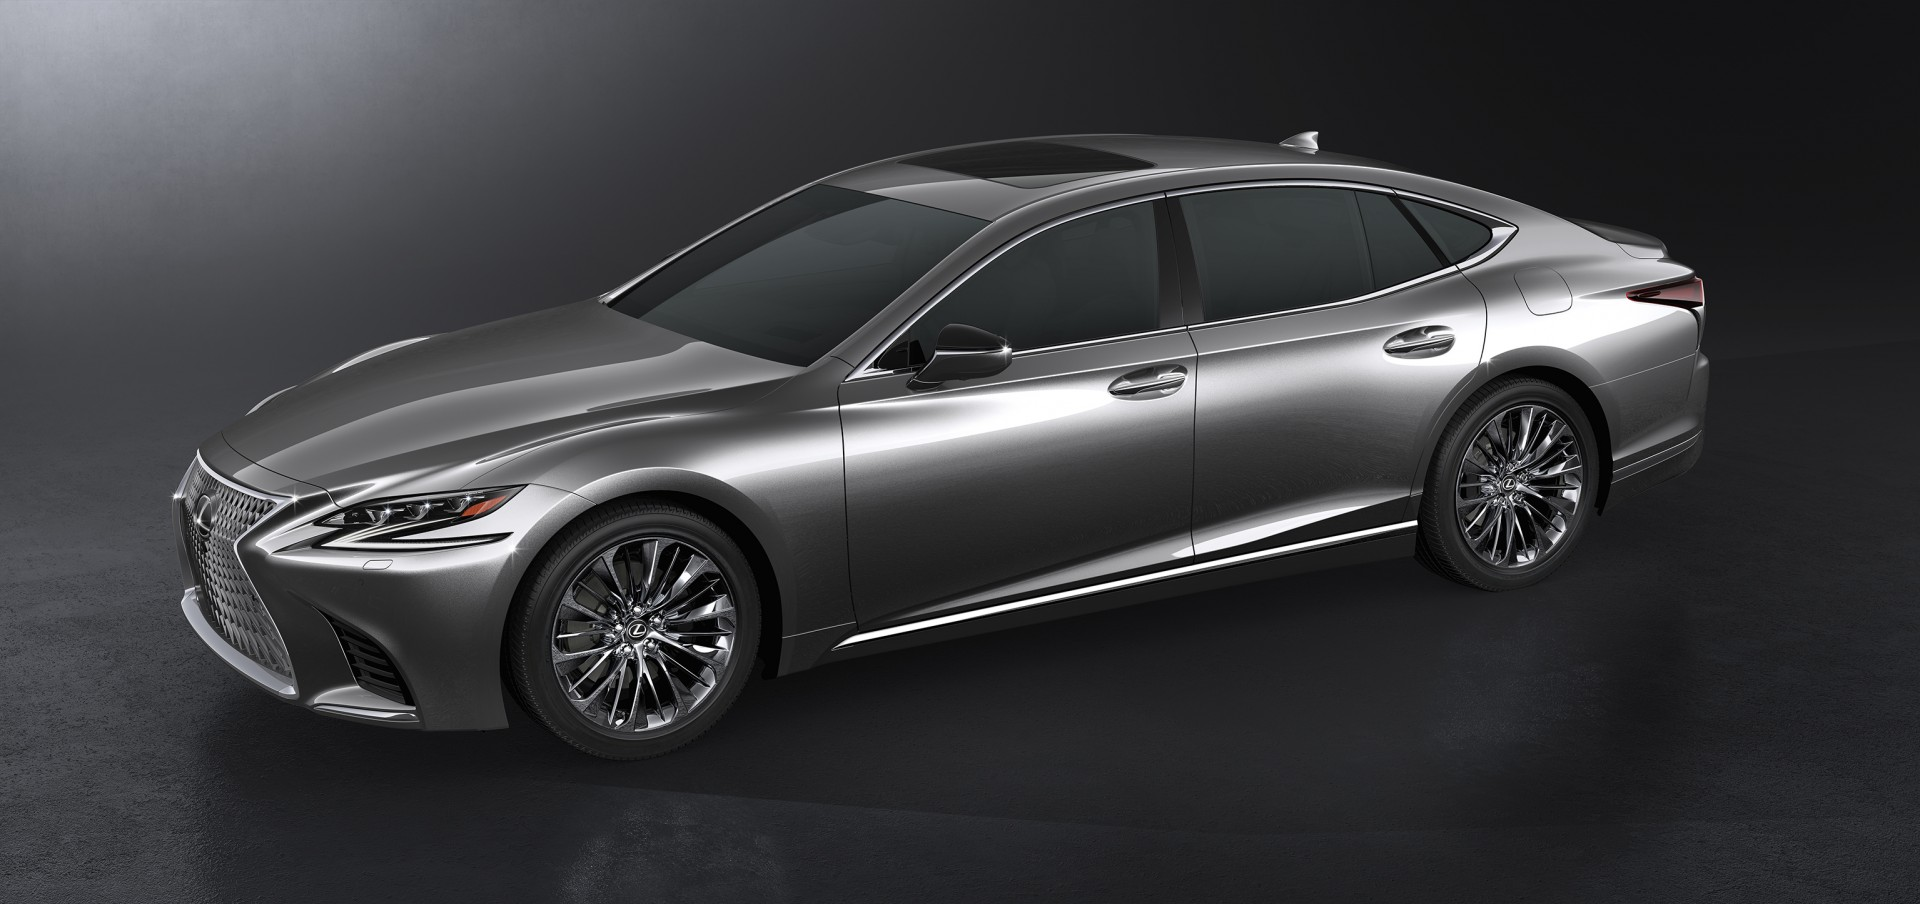 2018 lexus sedan. wonderful sedan throughout 2018 lexus sedan